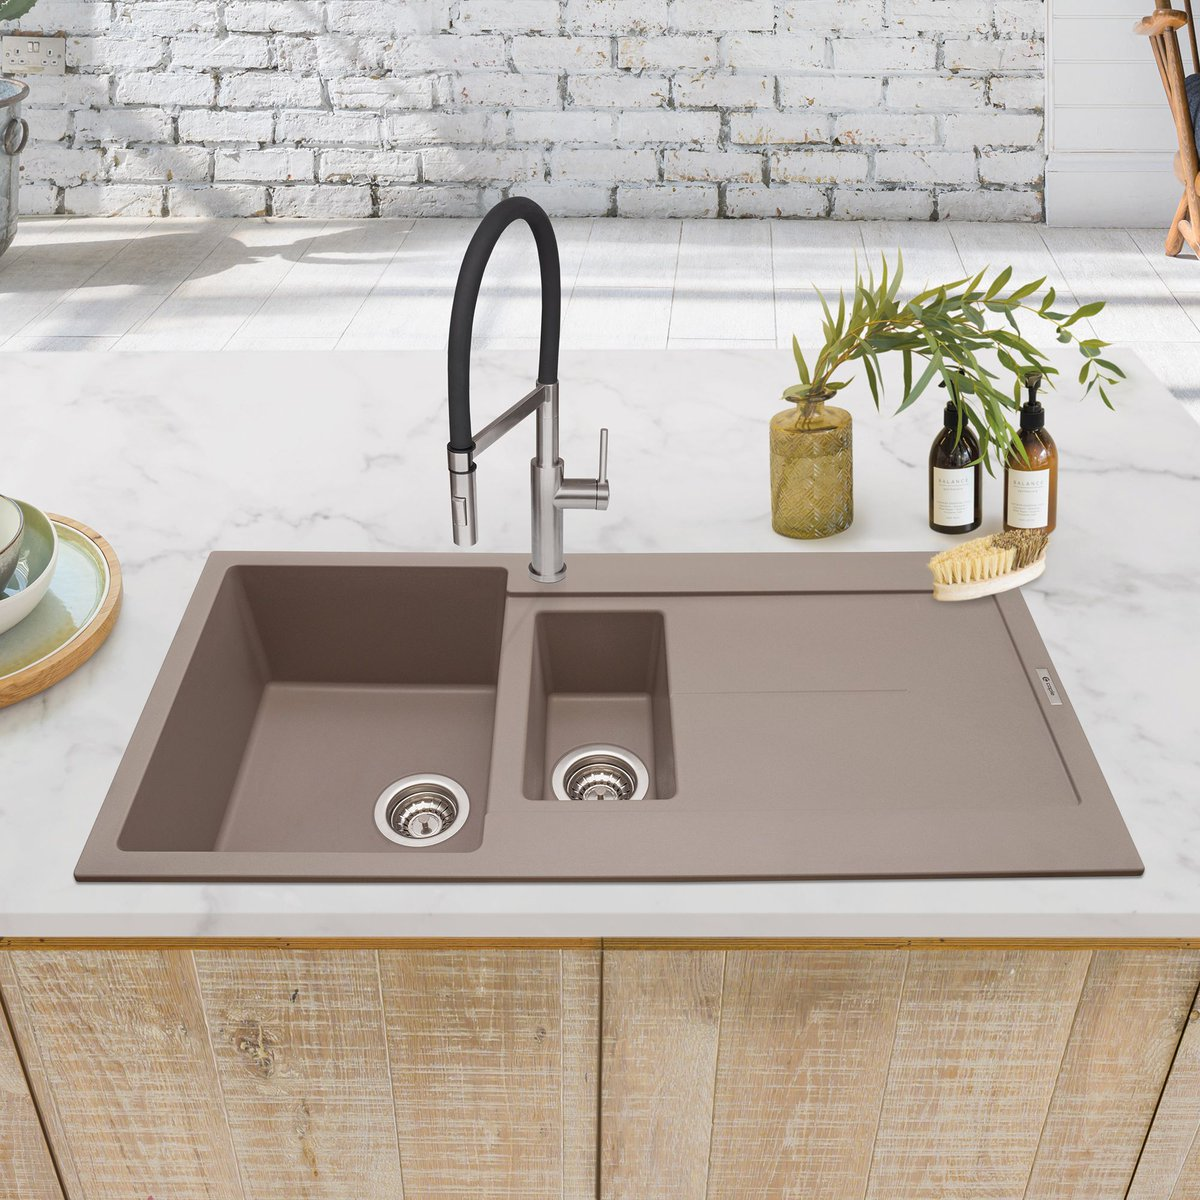 NEW! Have you seen our new Mink granite sink? Not only is granite a great robust material for a much-used kitchen sink, but our granite range is also available in a variety of sizes and styles & colours! View the collection here: buff.ly/3h0C122 #CapleQuality #Sink